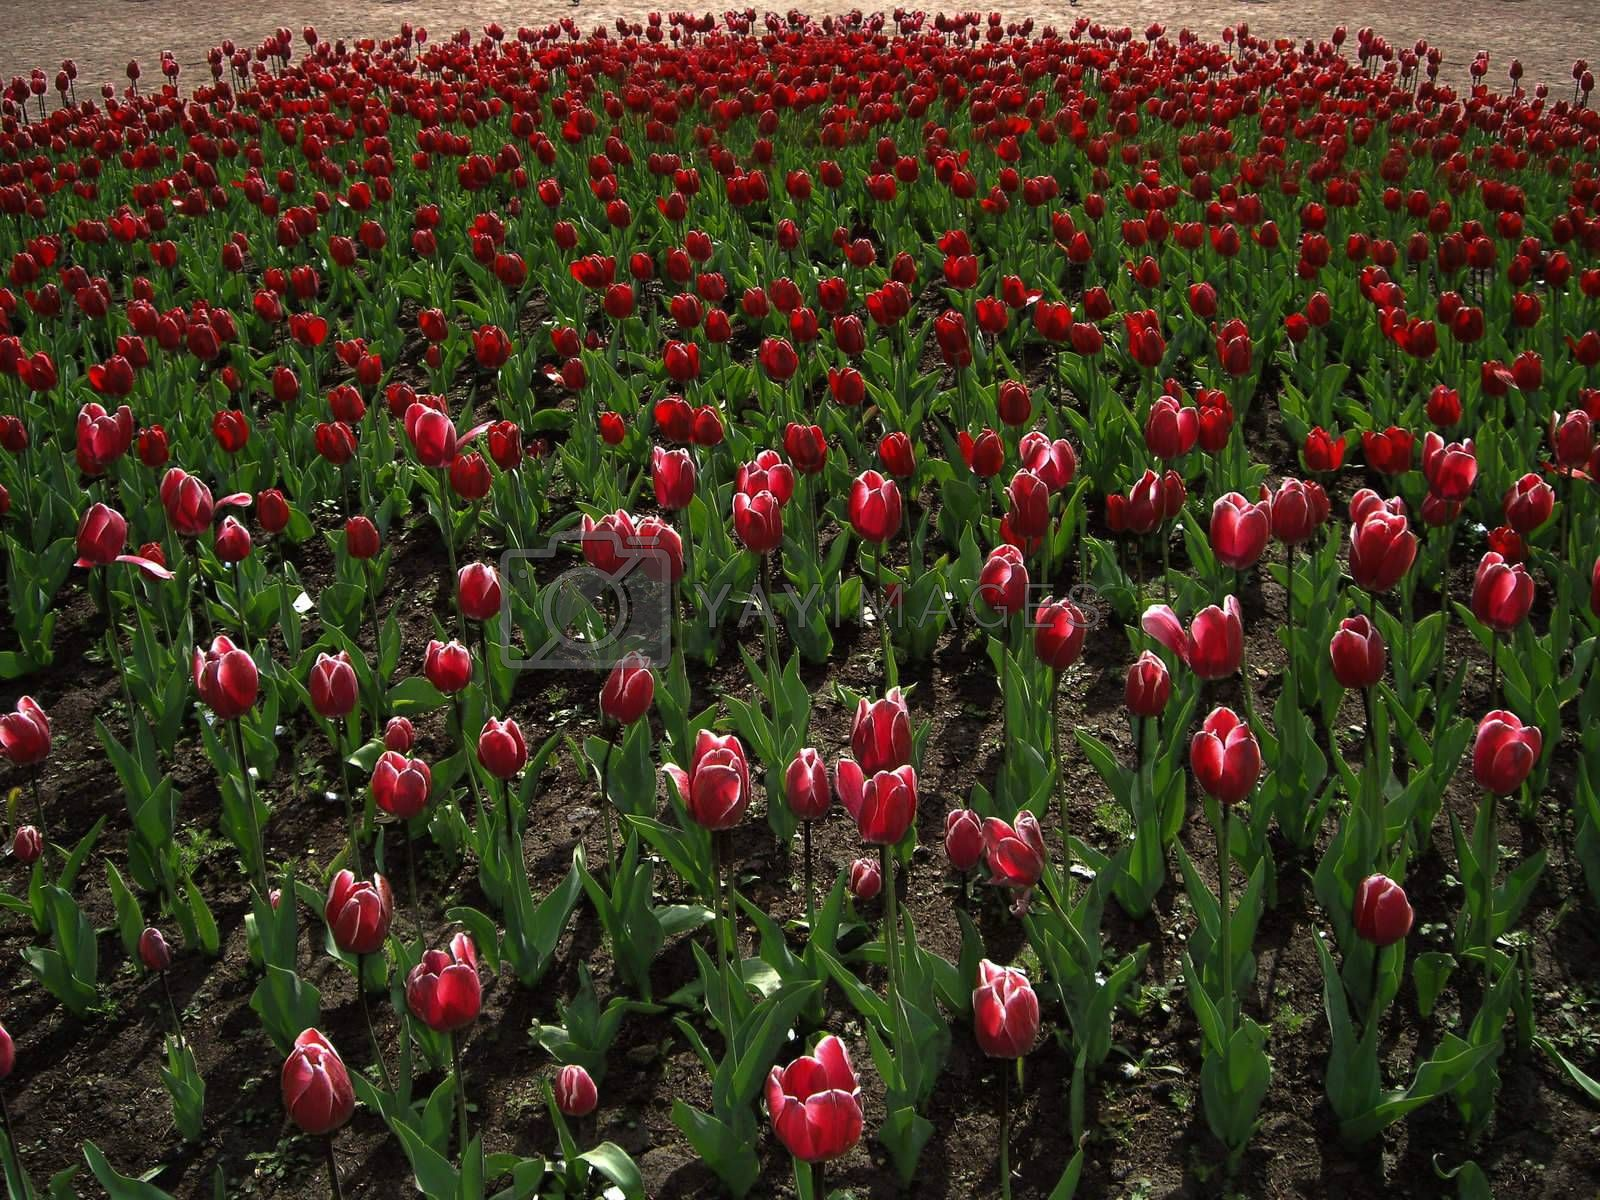 The flower bed consisting of red tulips